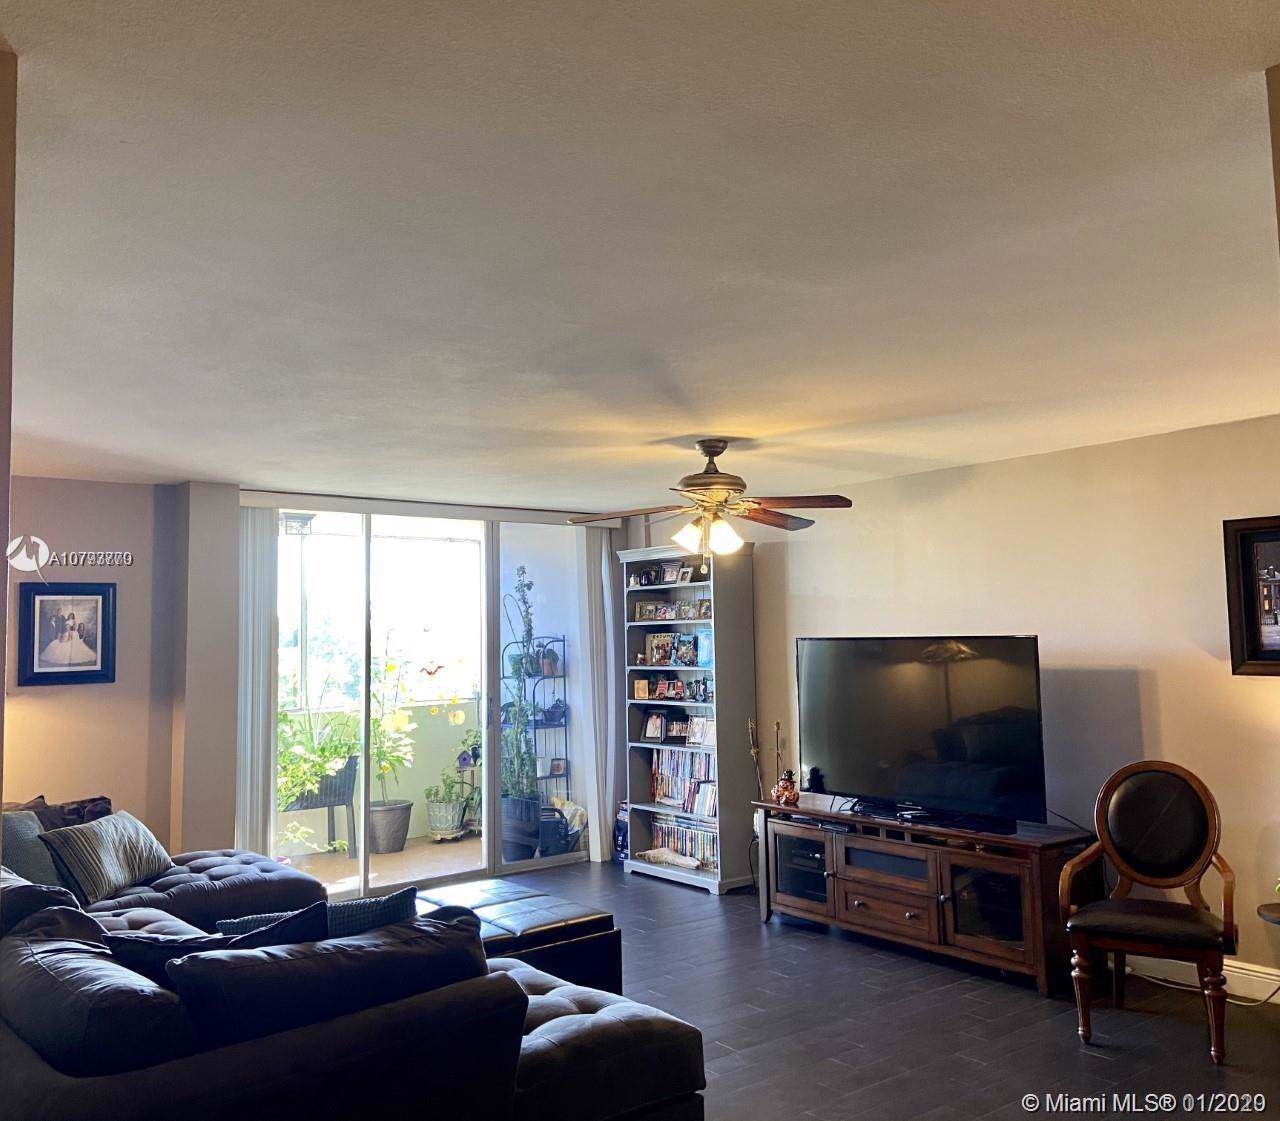 6911 147th Ave - Photo 1